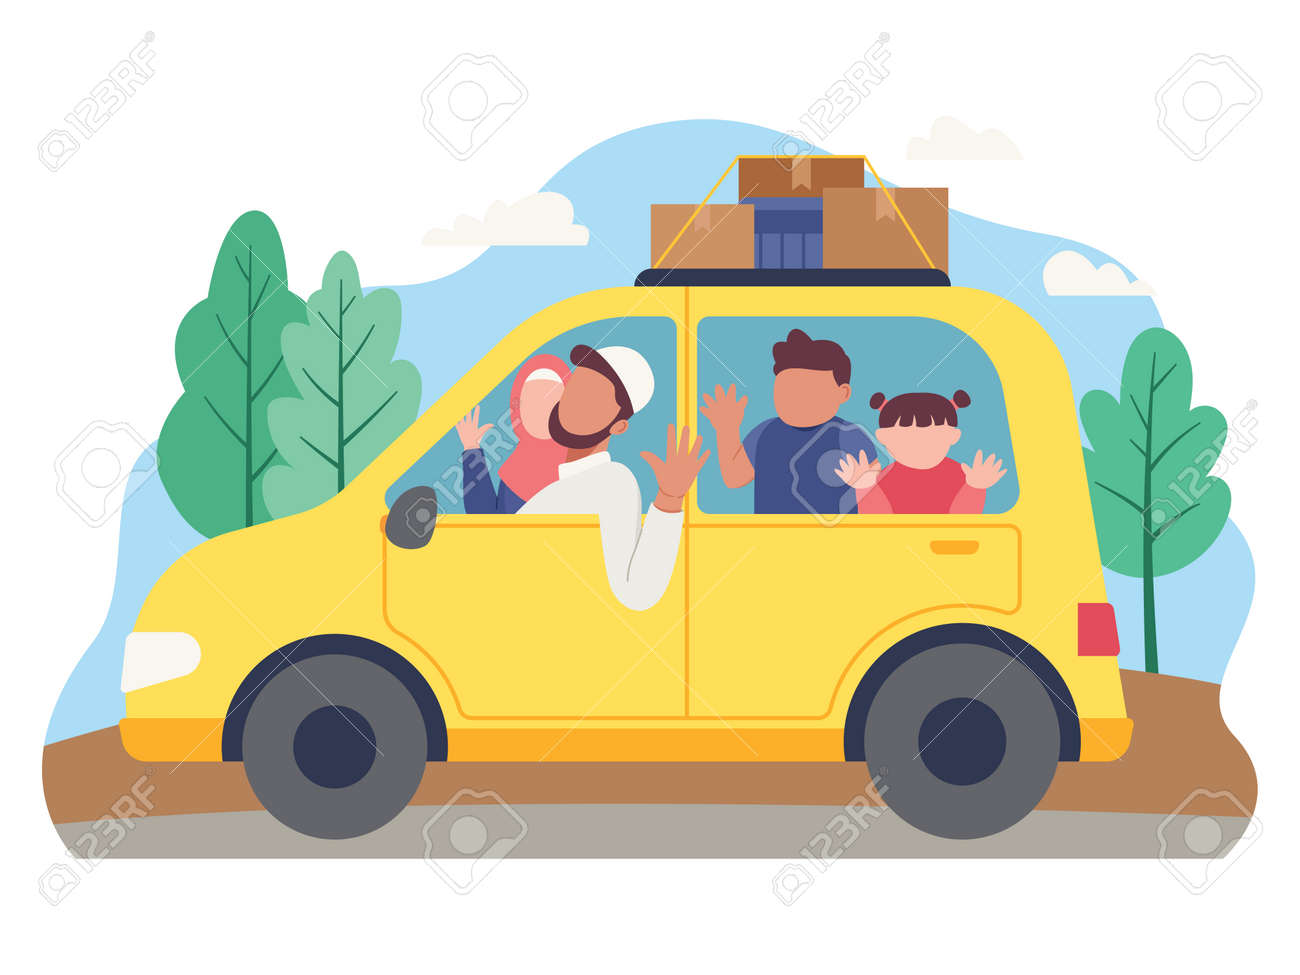 Muslim family goes on holiday using a car. Family goes to home village to celebrate Eid Mubarak. Vector illustration in a flat style - 168304467